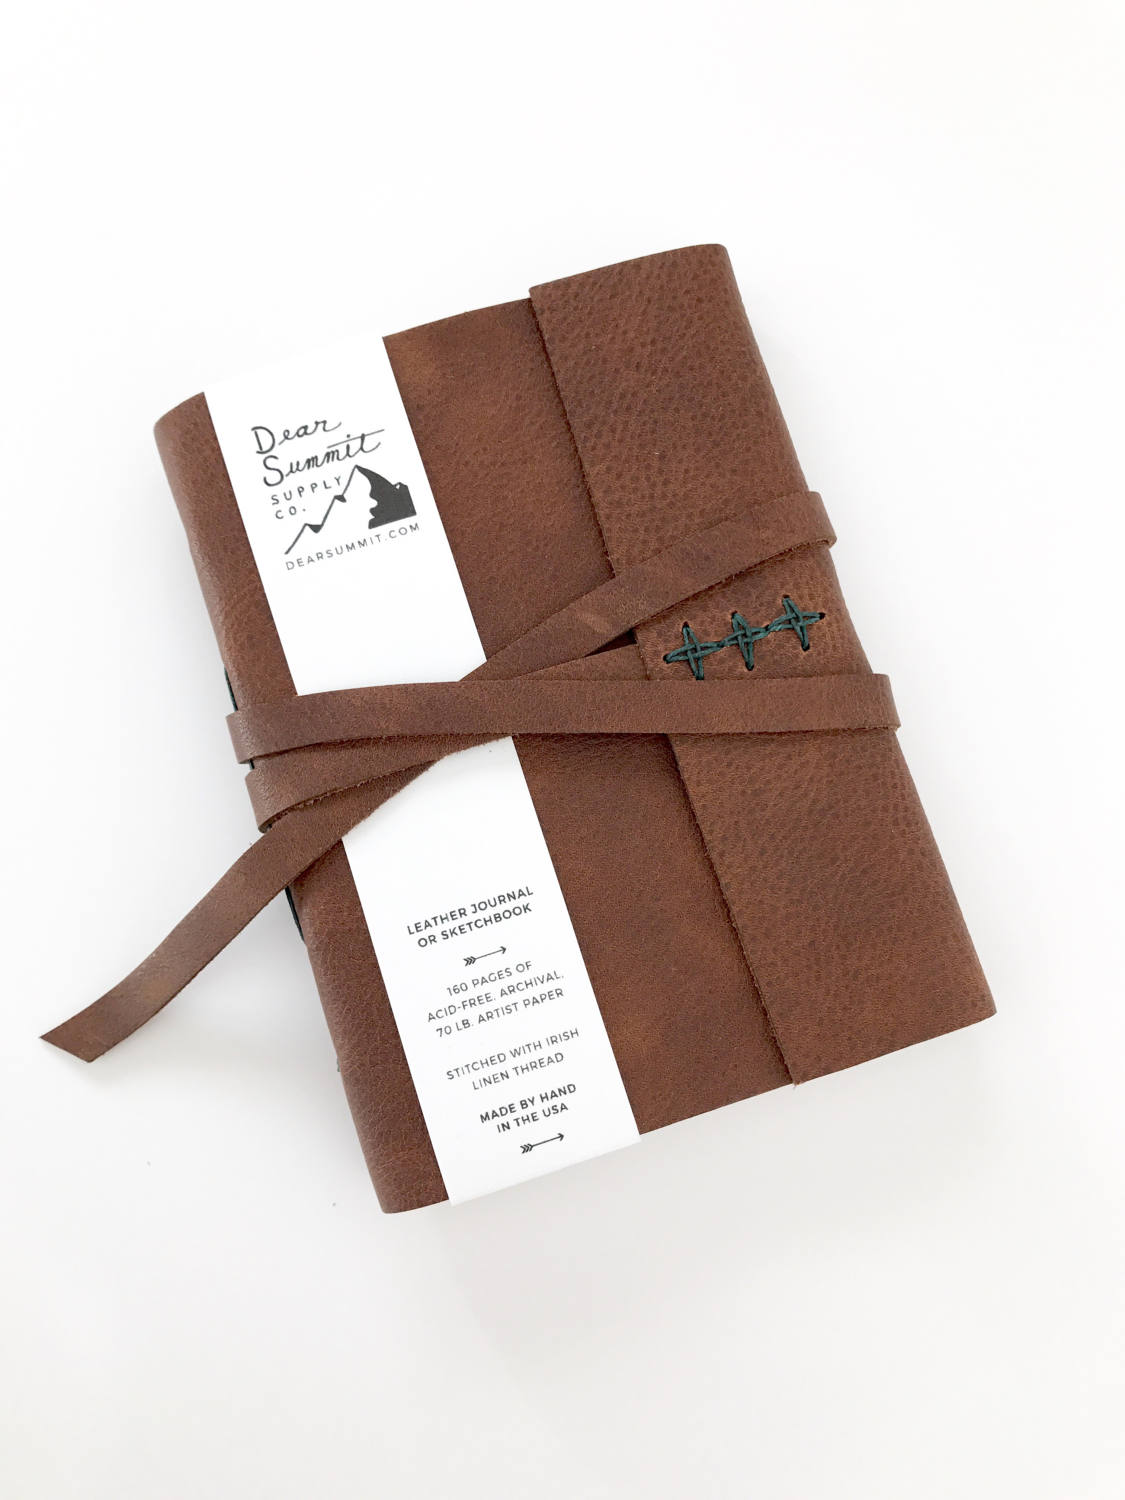 A Dear Summit journal with my clear, simple packaging - ready for retail or wholesale